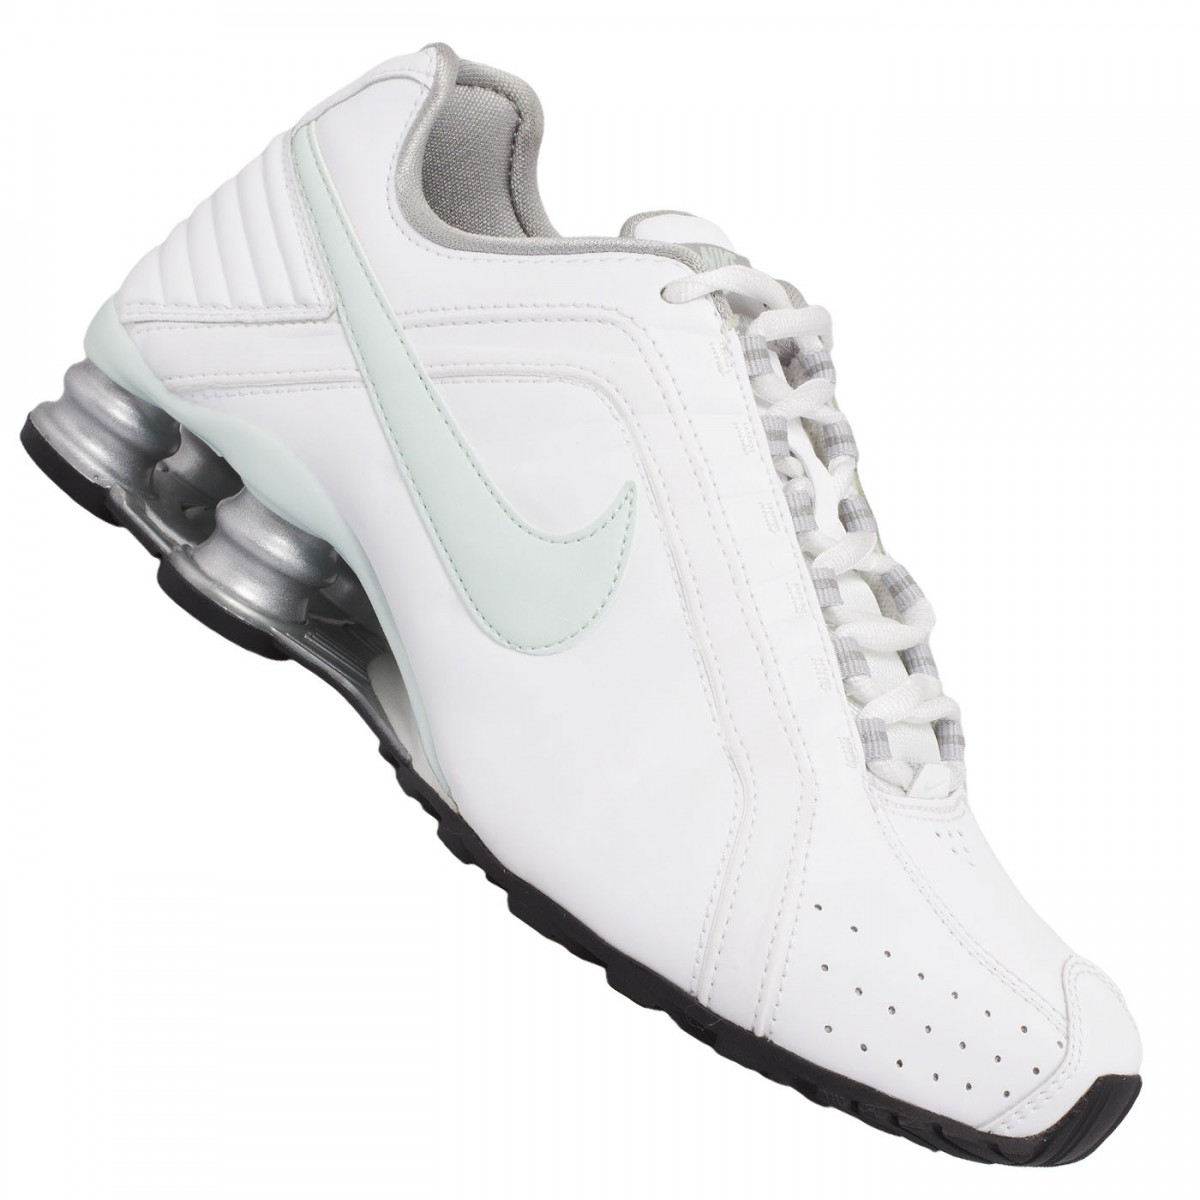 low priced 1fed2 f1816 Tênis Nike Shox Junior WMNS   Treino e Corrida